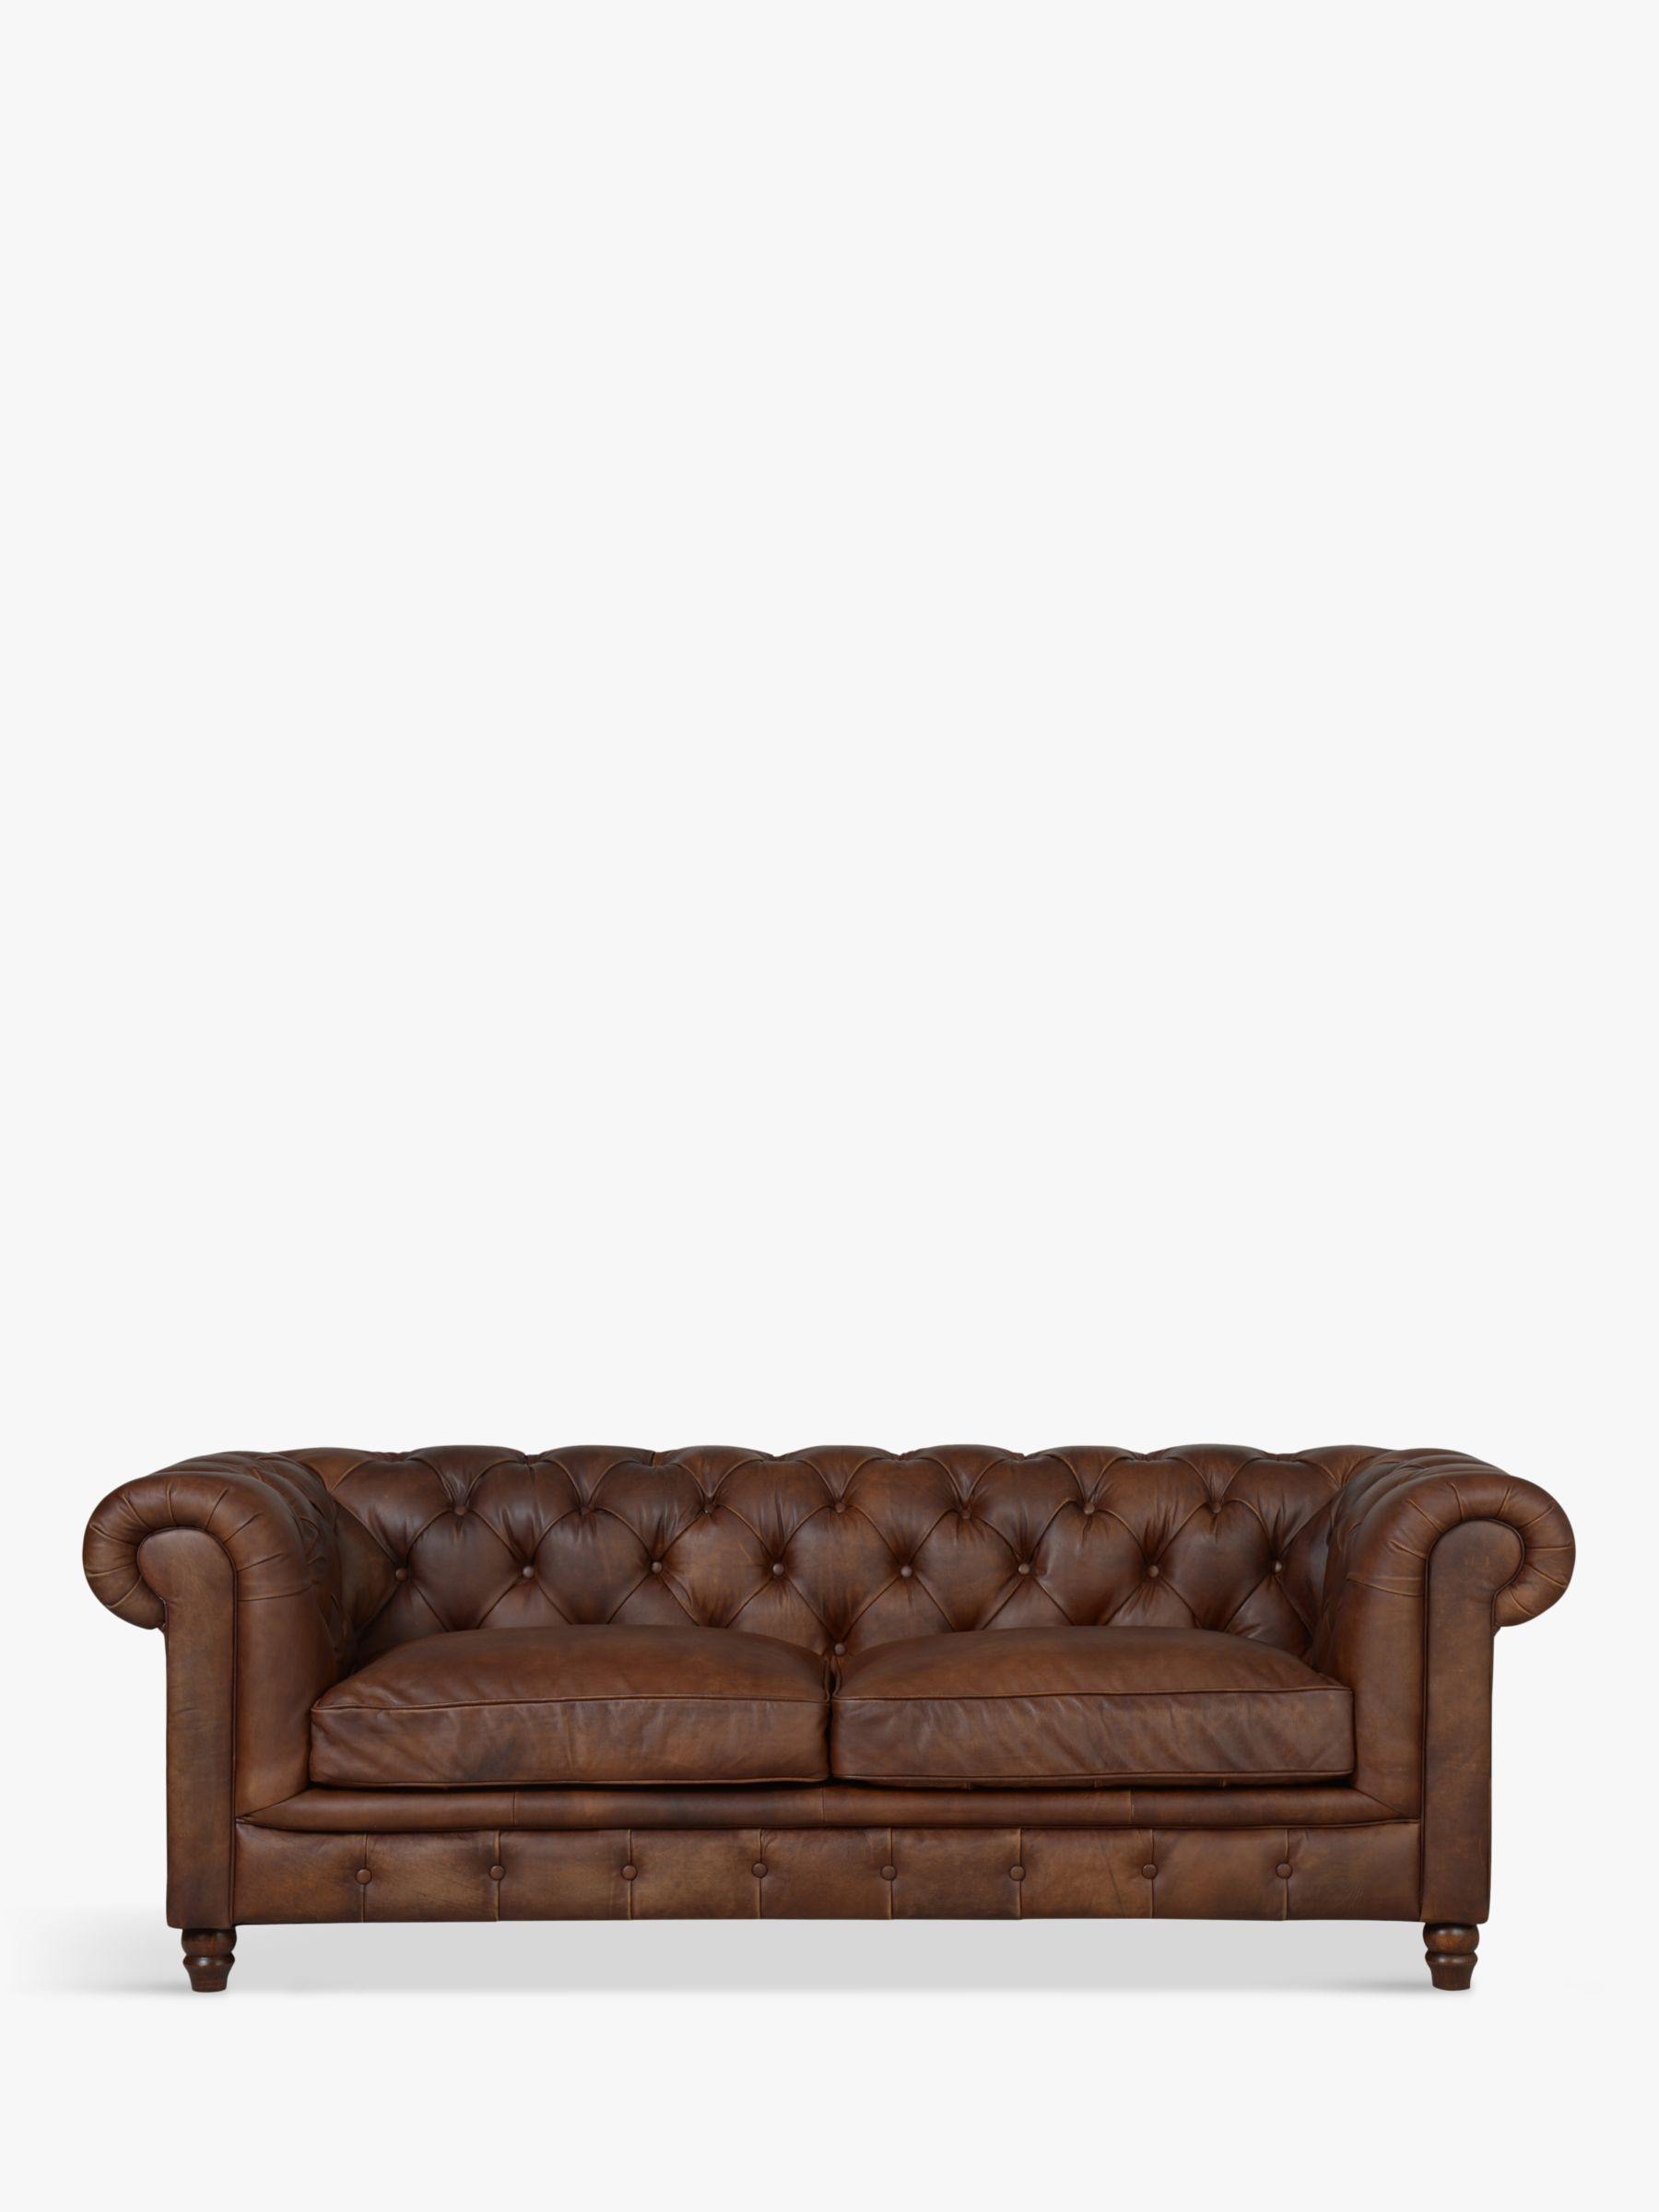 Halo Halo Earle Chesterfield Medium 2 Seater Leather Sofa, Antique Whisky